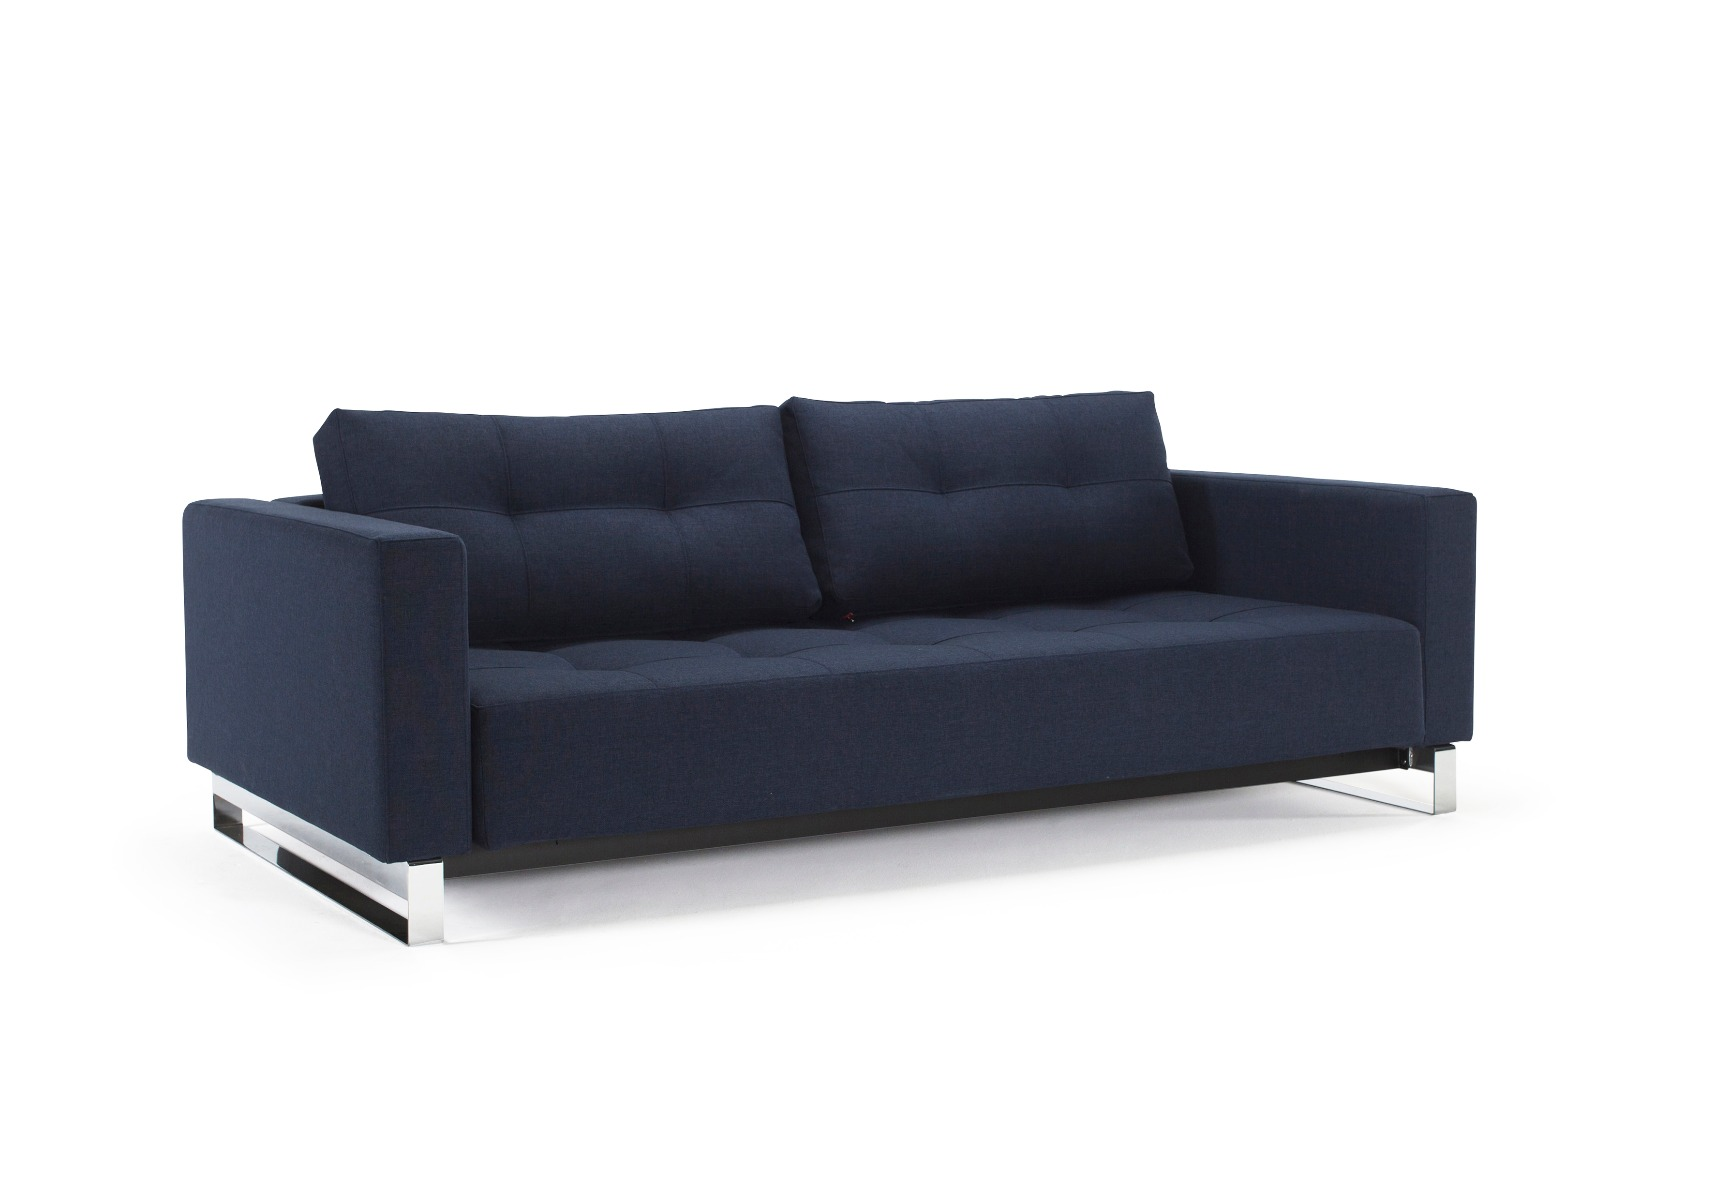 Cassius D.E. Lounger - Mixed Dance Blue Sovesofa 155x200